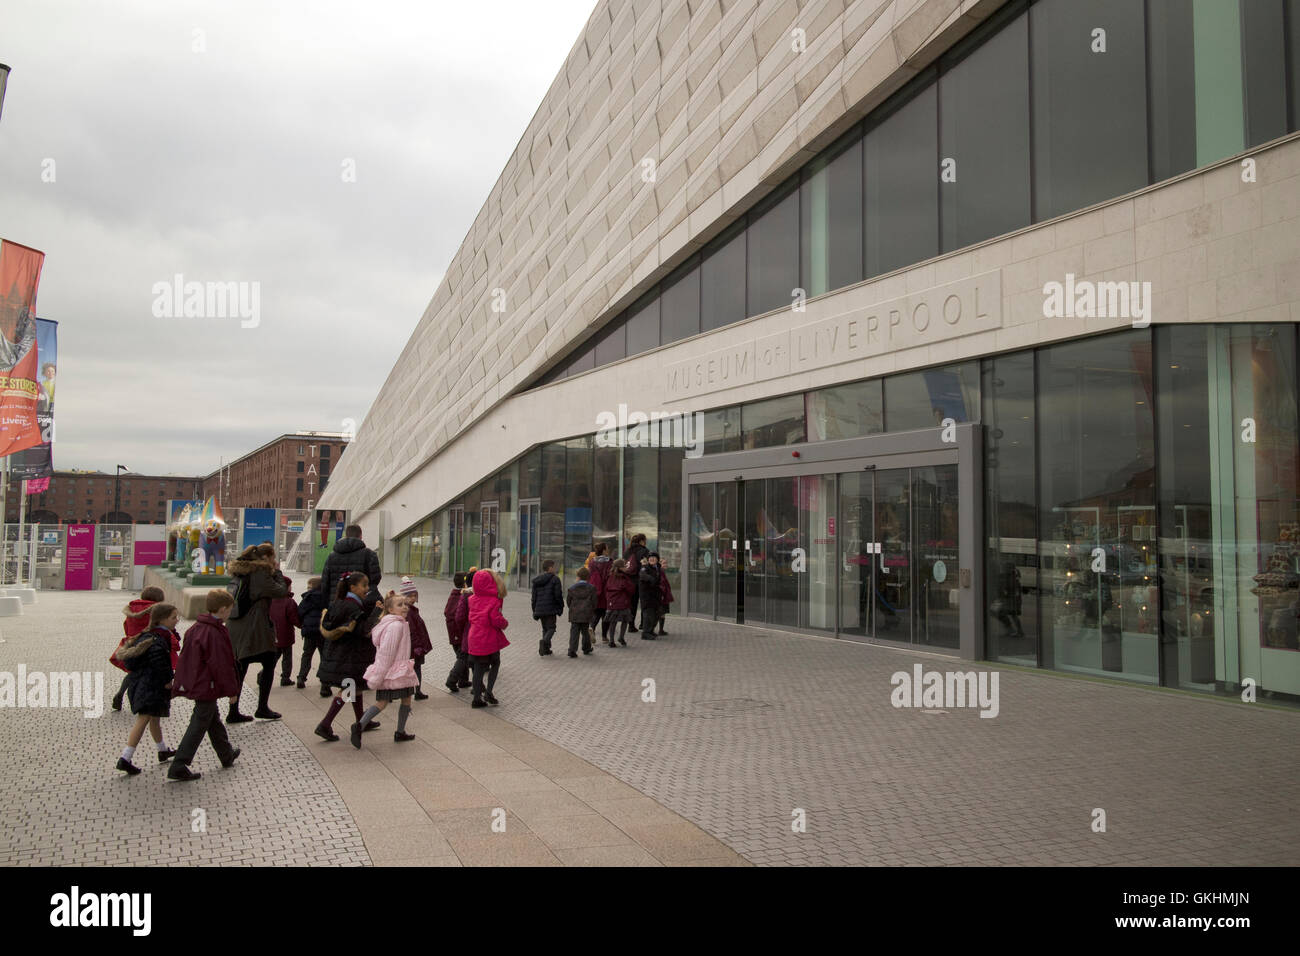 school groups visiting the Museum of Liverpool building merseyside - Stock Image